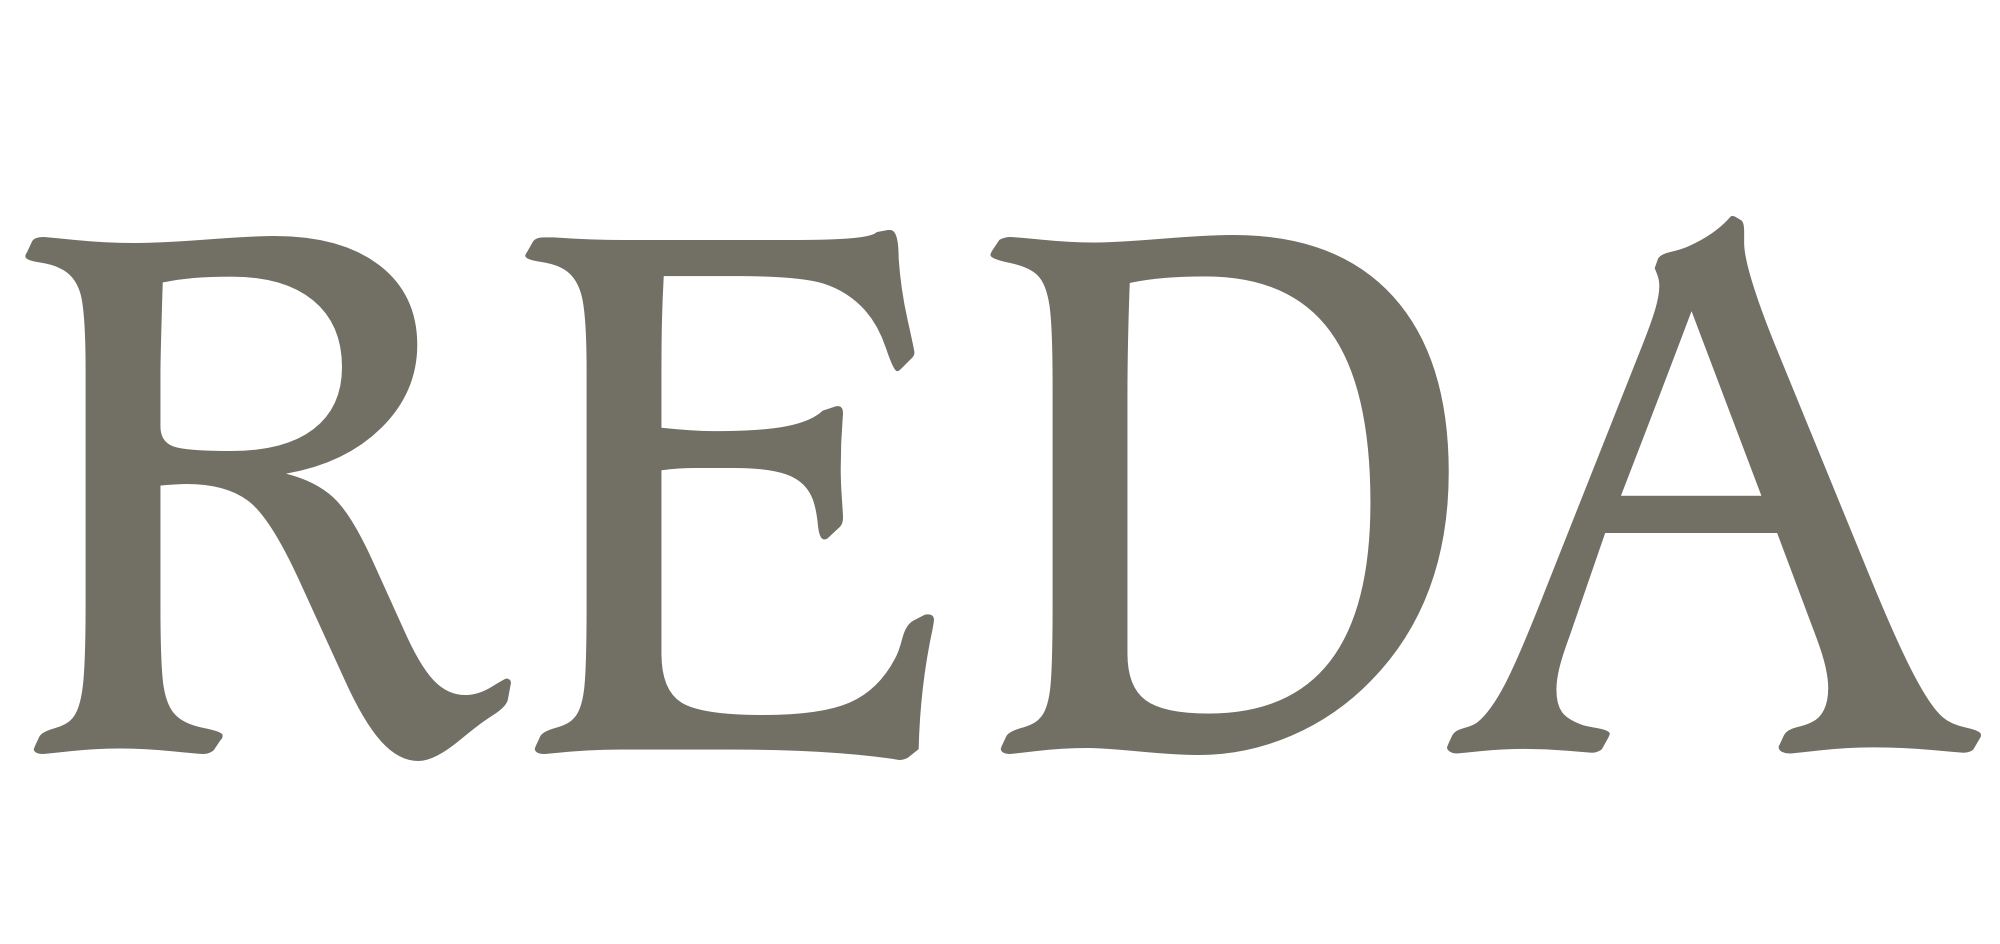 Reda - Name's Meaning of Reda